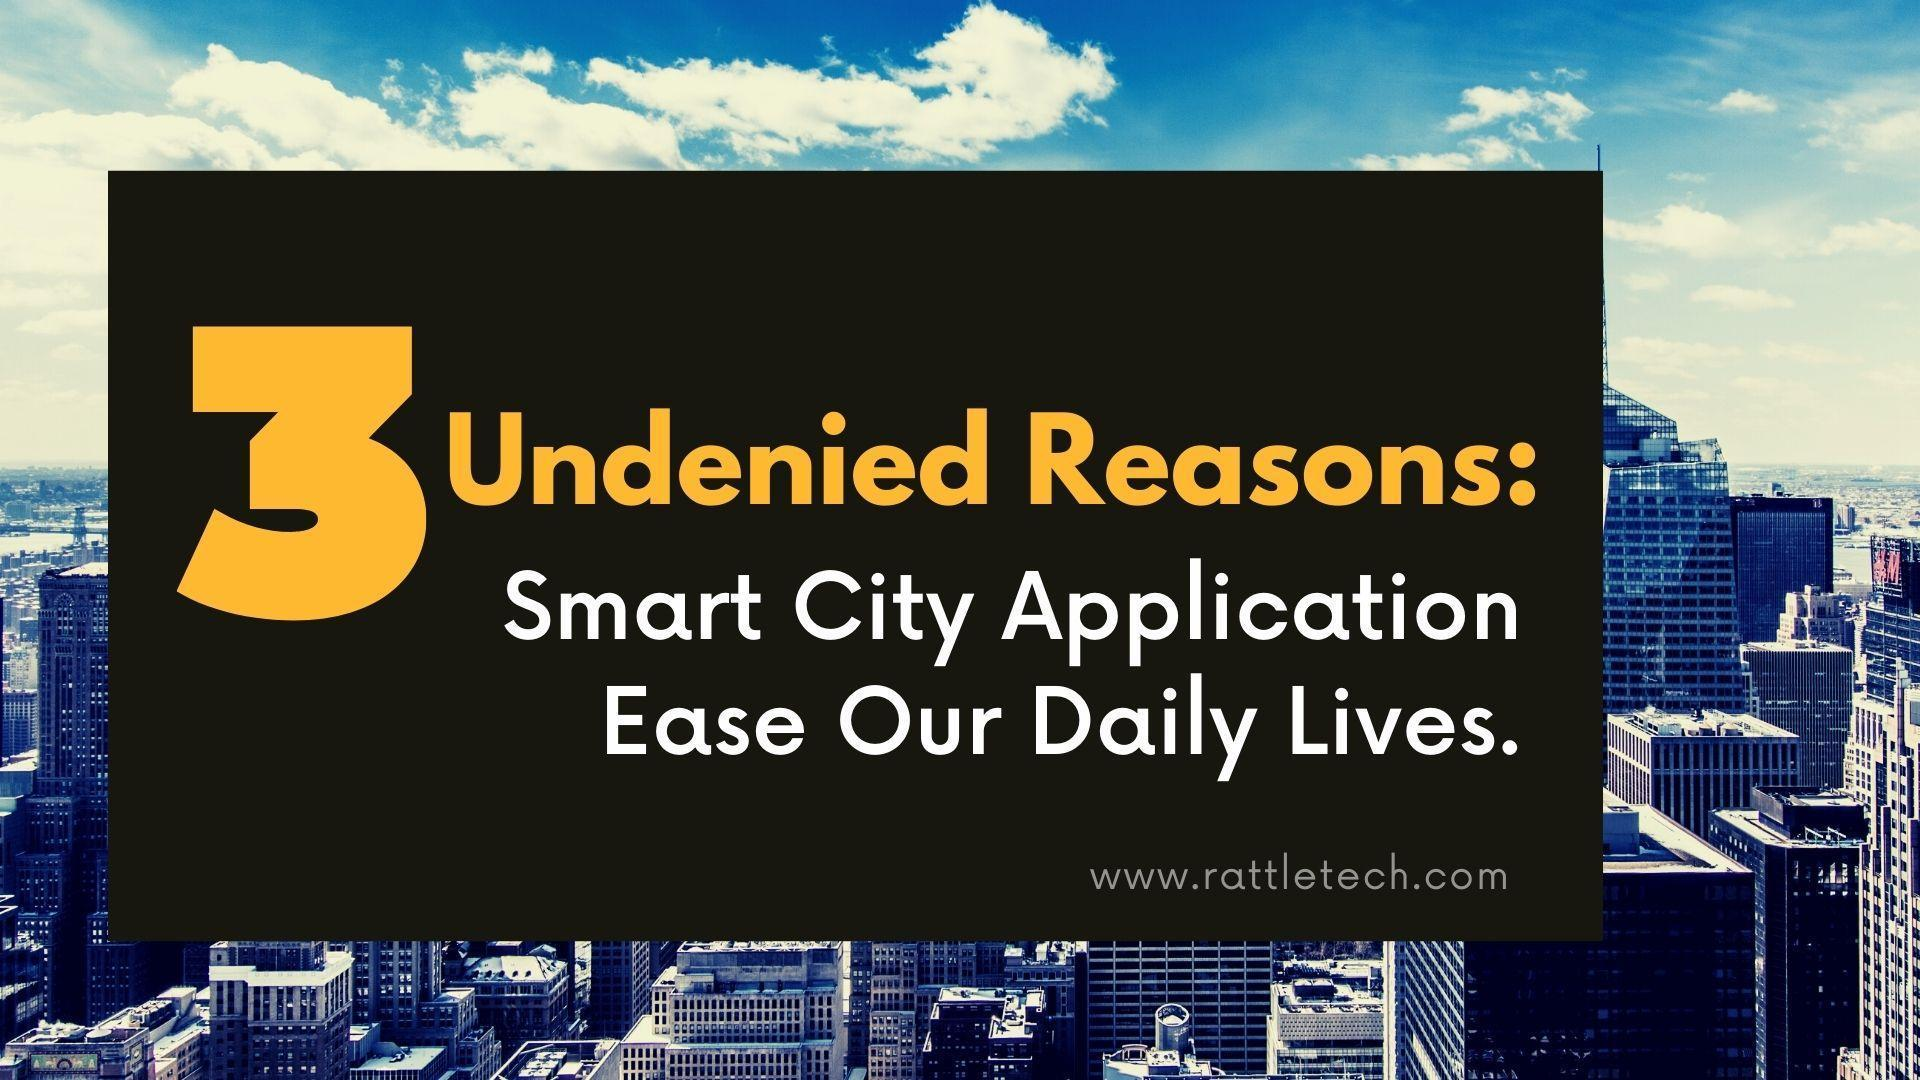 Smart-City-Application-Ease-Our-Daily-Lives.